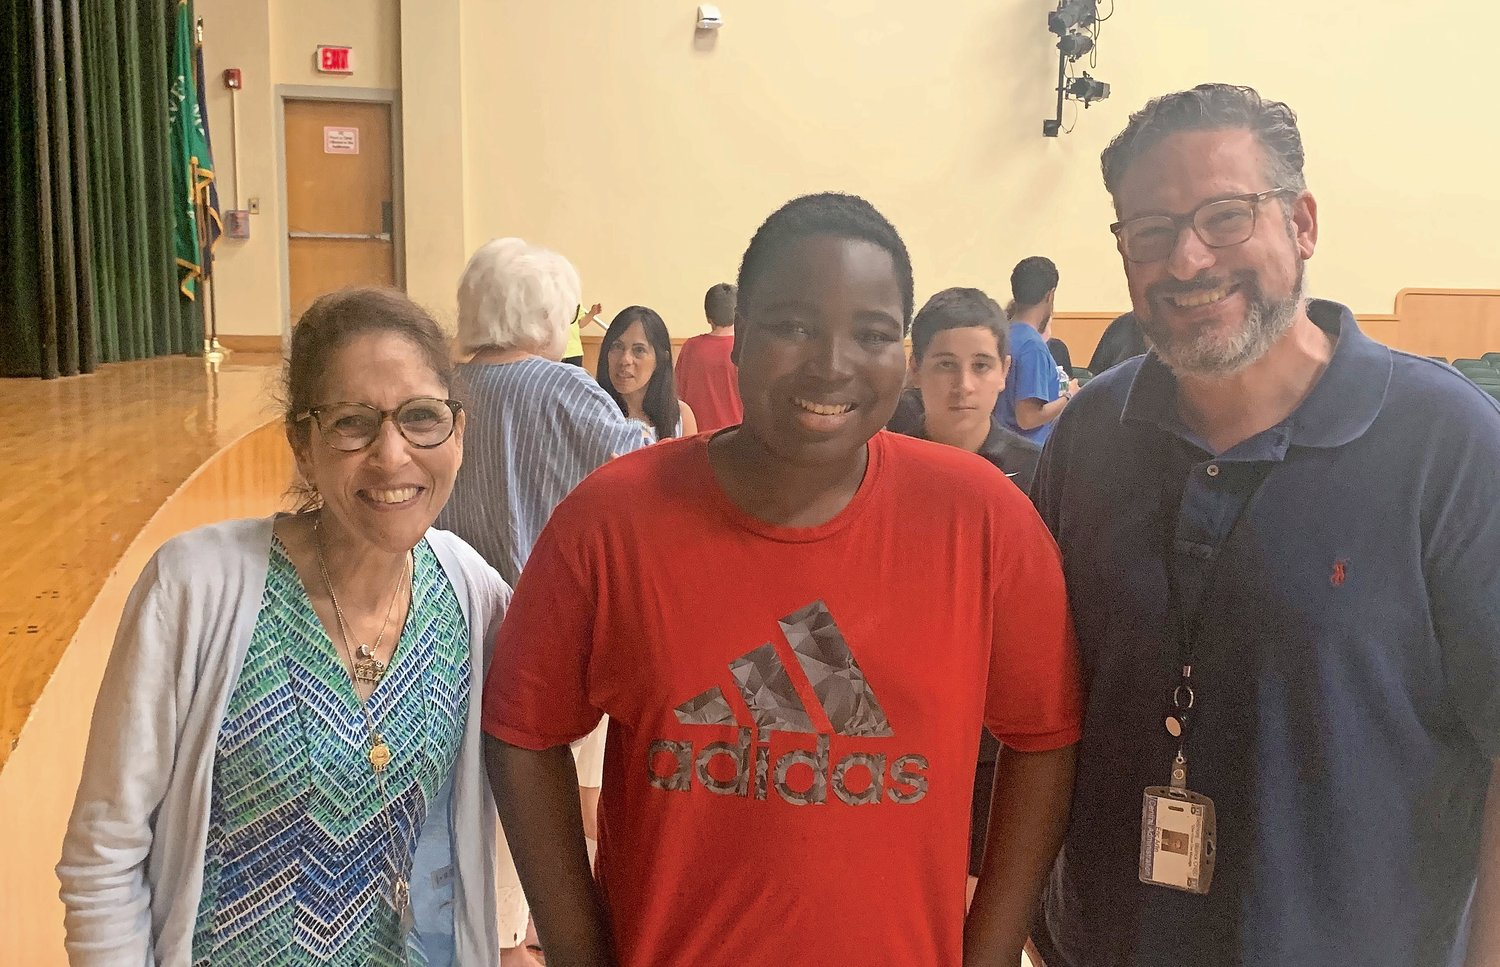 Several district officials celebrated the film's premiere, including Deputy Superintendent Mara Bollettieri, left, who congratulated Jovan O'Neal (the Mad Hatter) and Special Education Director Eric Arlin (the Red Queen's assistant).